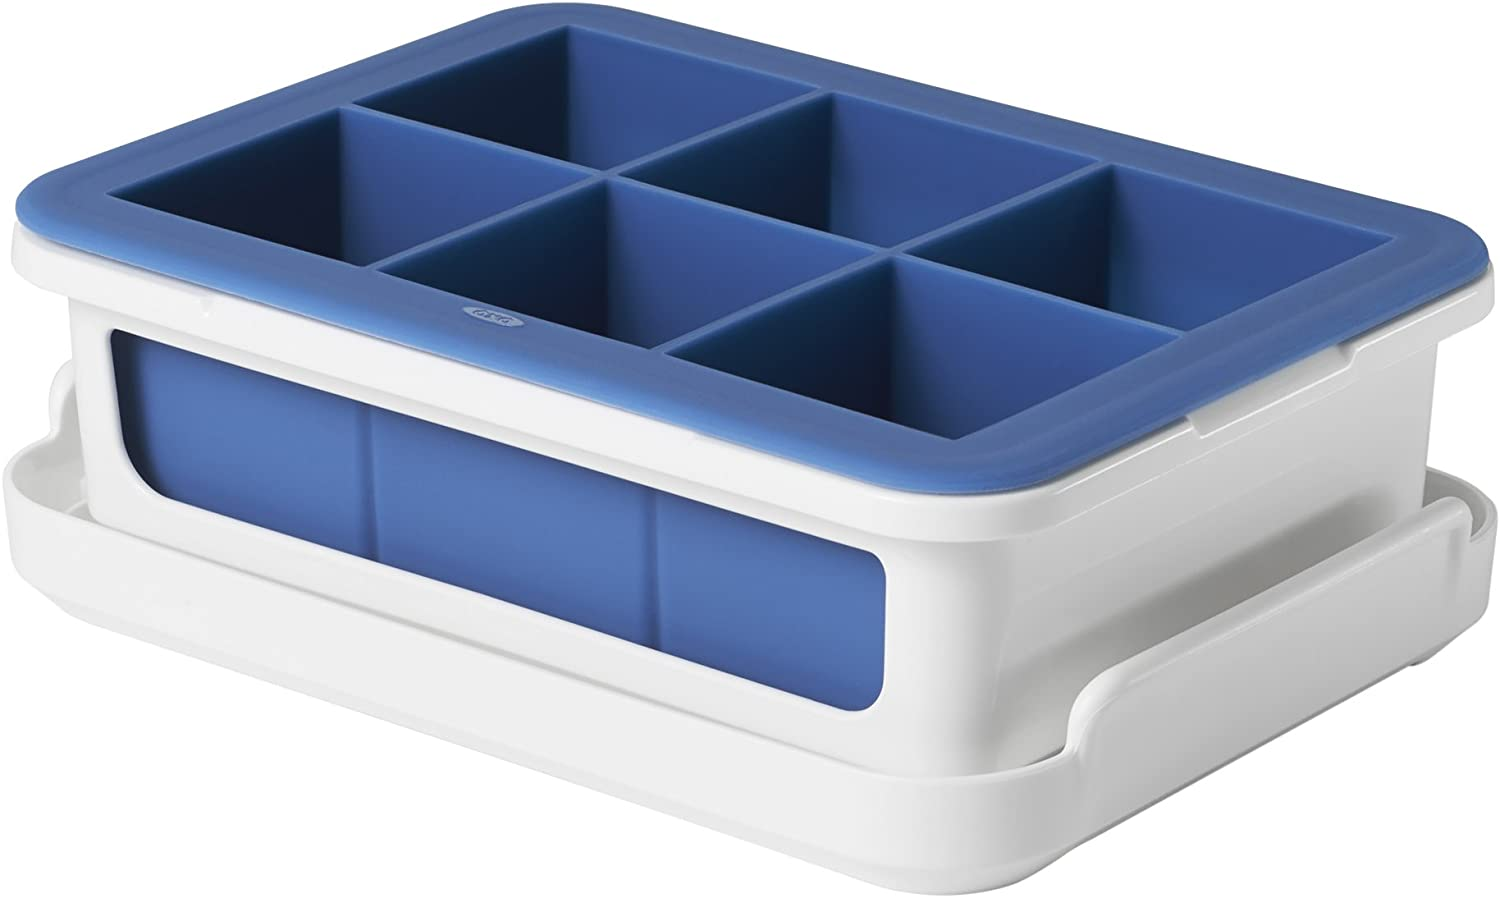 OXO Good Grips Silicone Stackable Ice Cube Tray